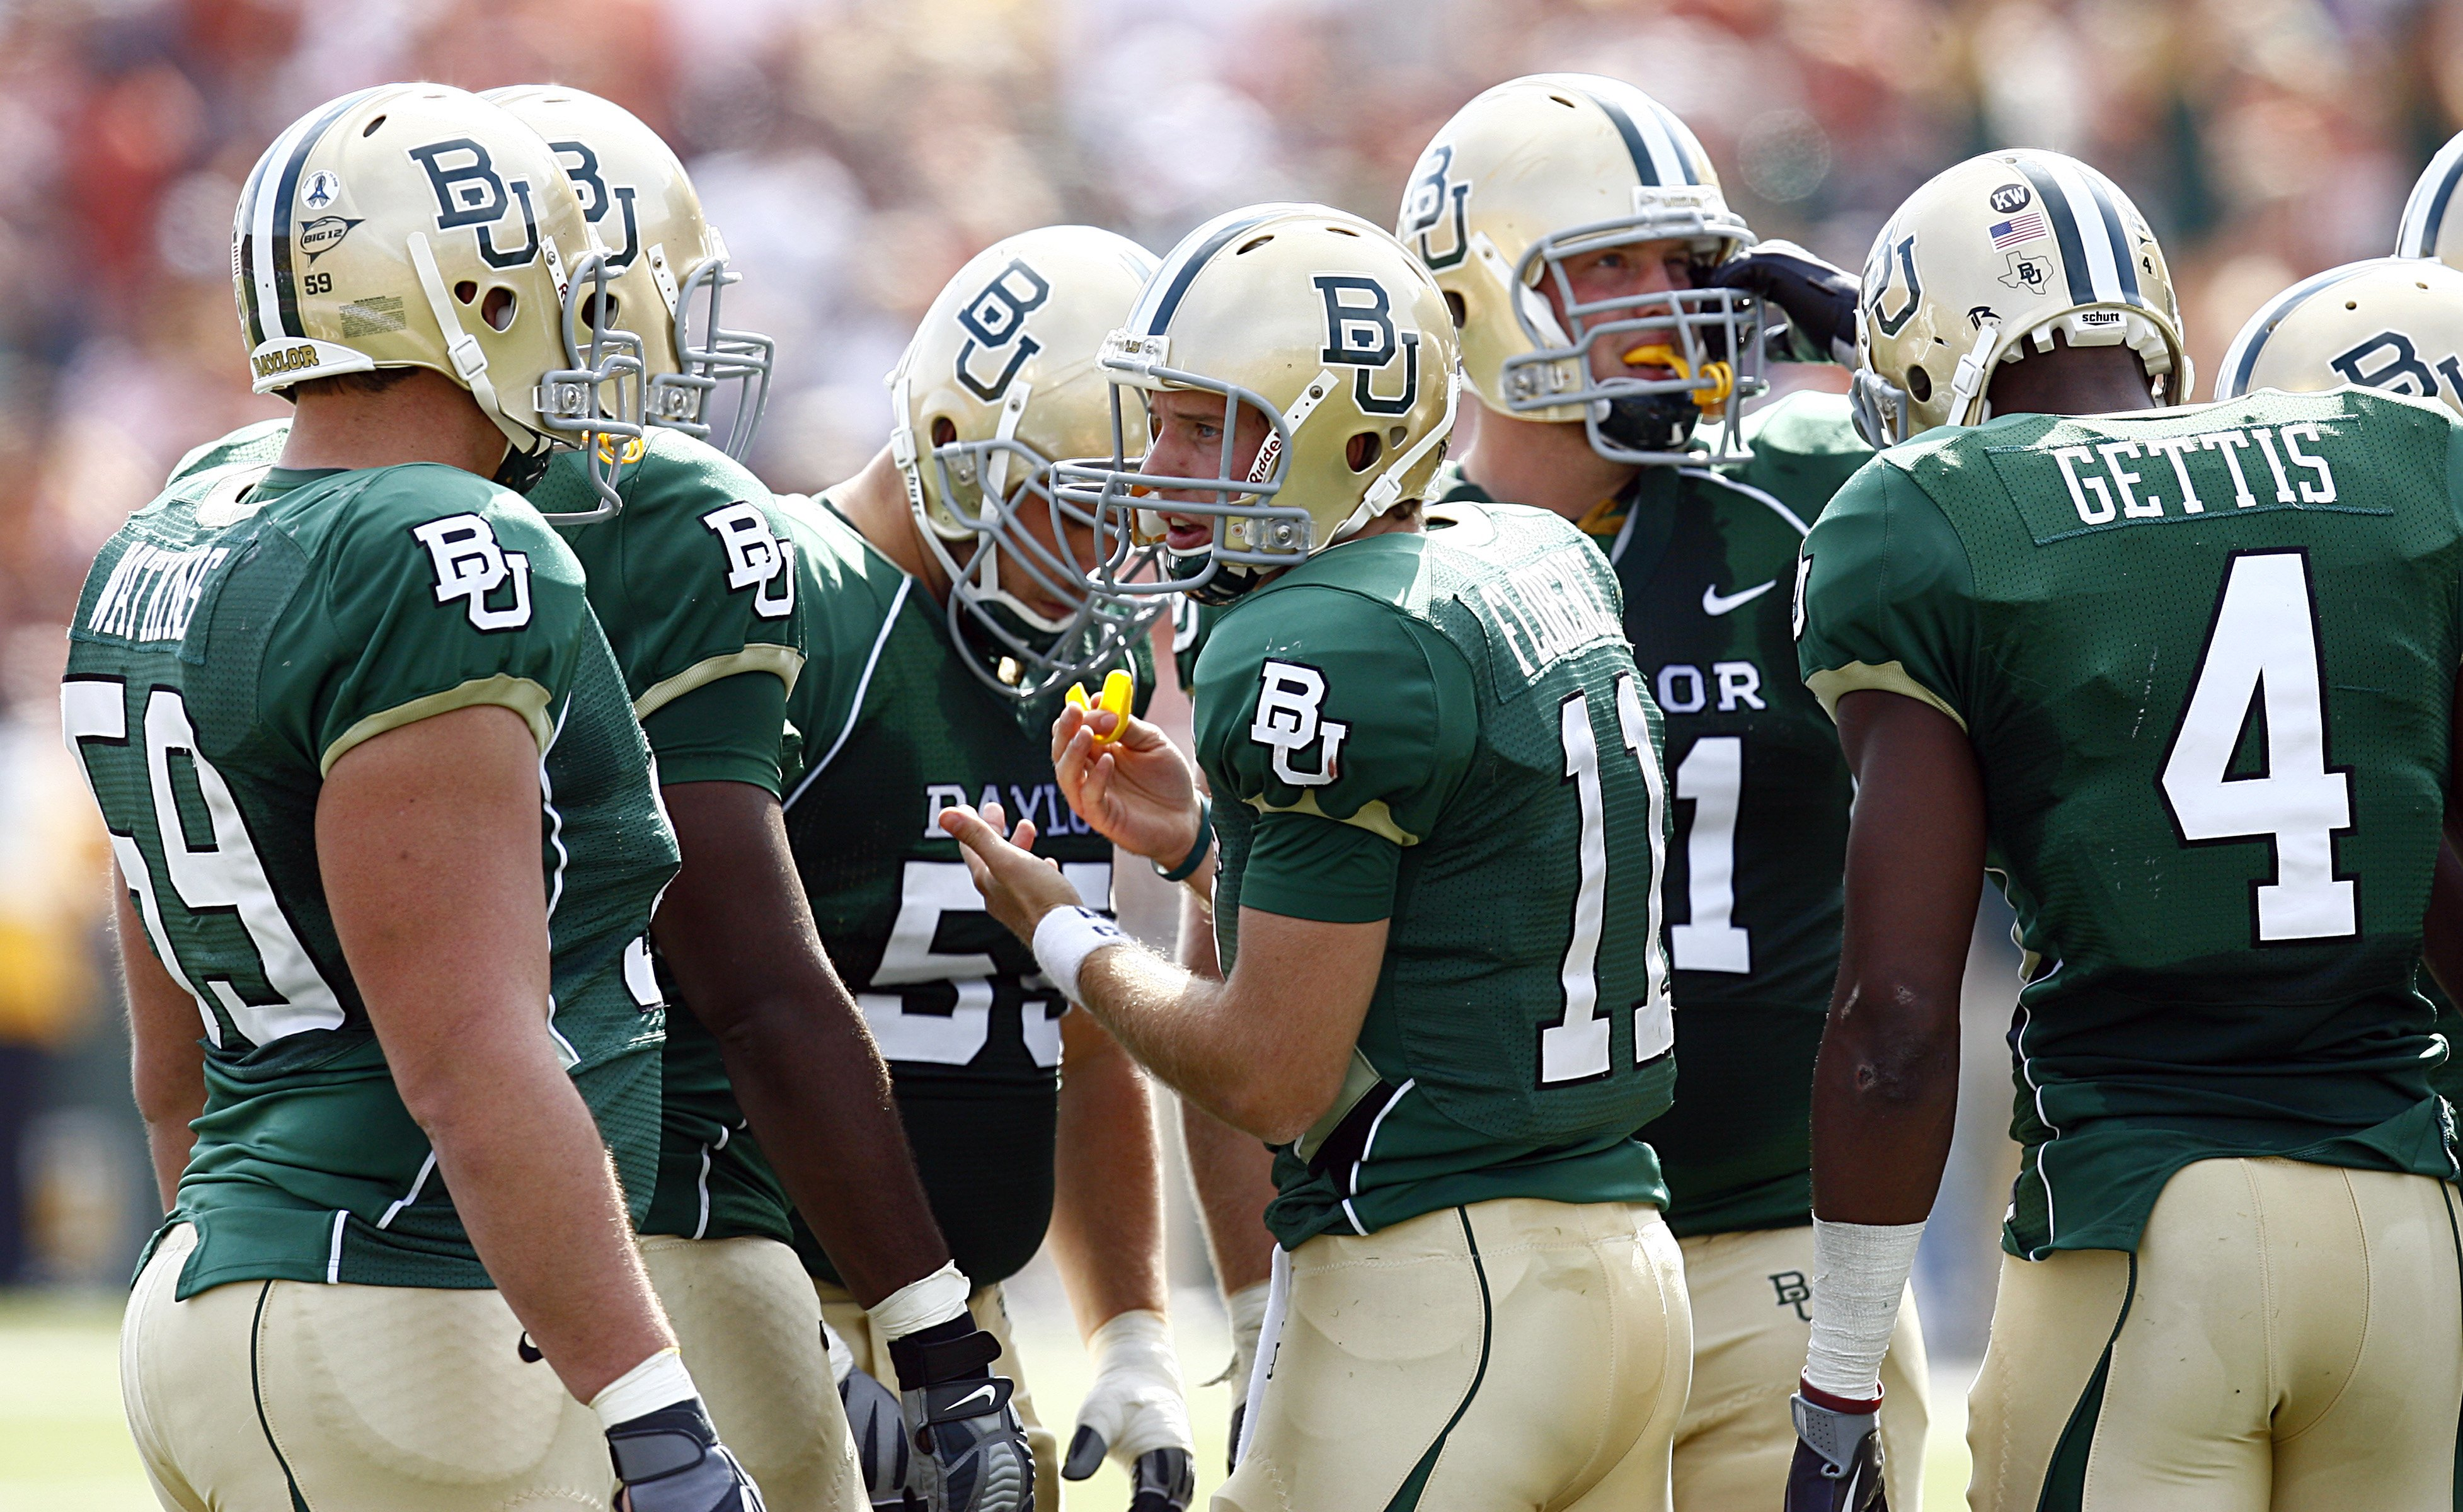 WACO, TX - NOVEMBER 14:  Quarterback Nick Florence #11 of the Baylor Bears leads his team in the huddle against the Texas Longhorns in the second half on November 14, 2009 at Floyd Casey Stadium in Waco, Texas. (Photo by Tom Pennington/Getty Images)